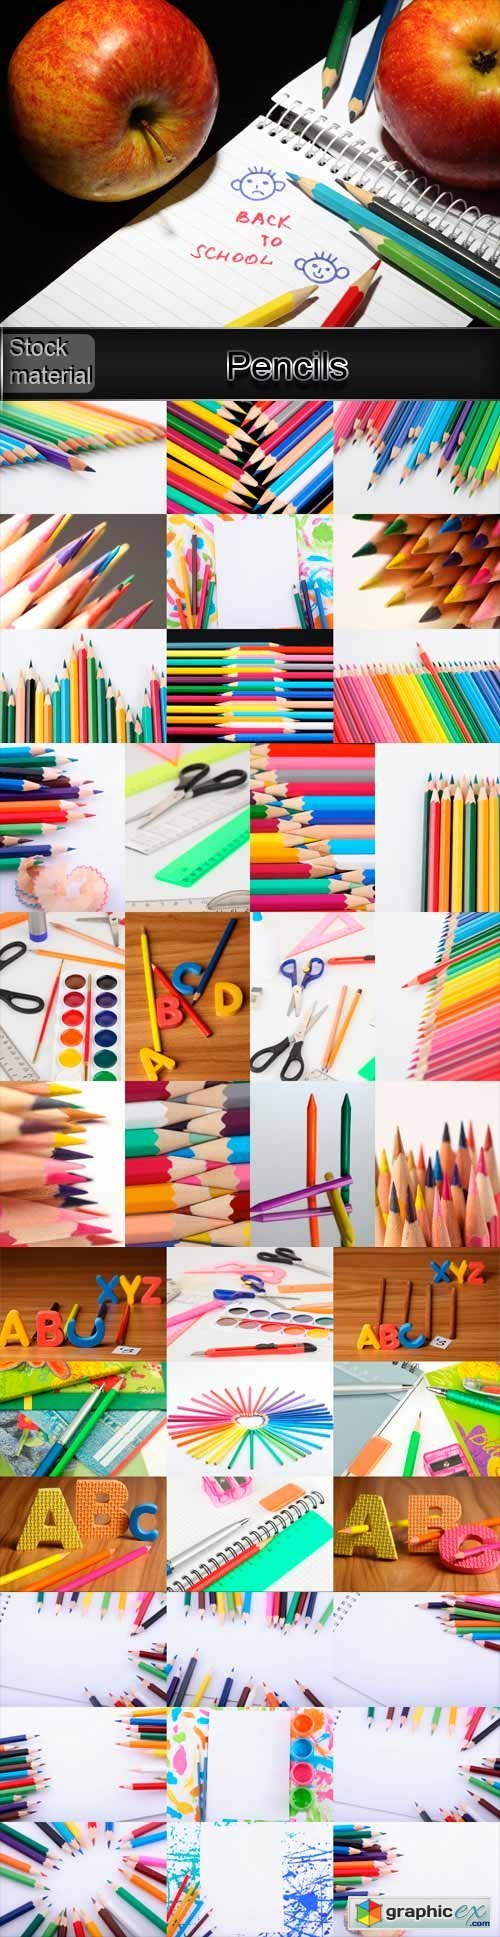 Pencils, paint, stationery products